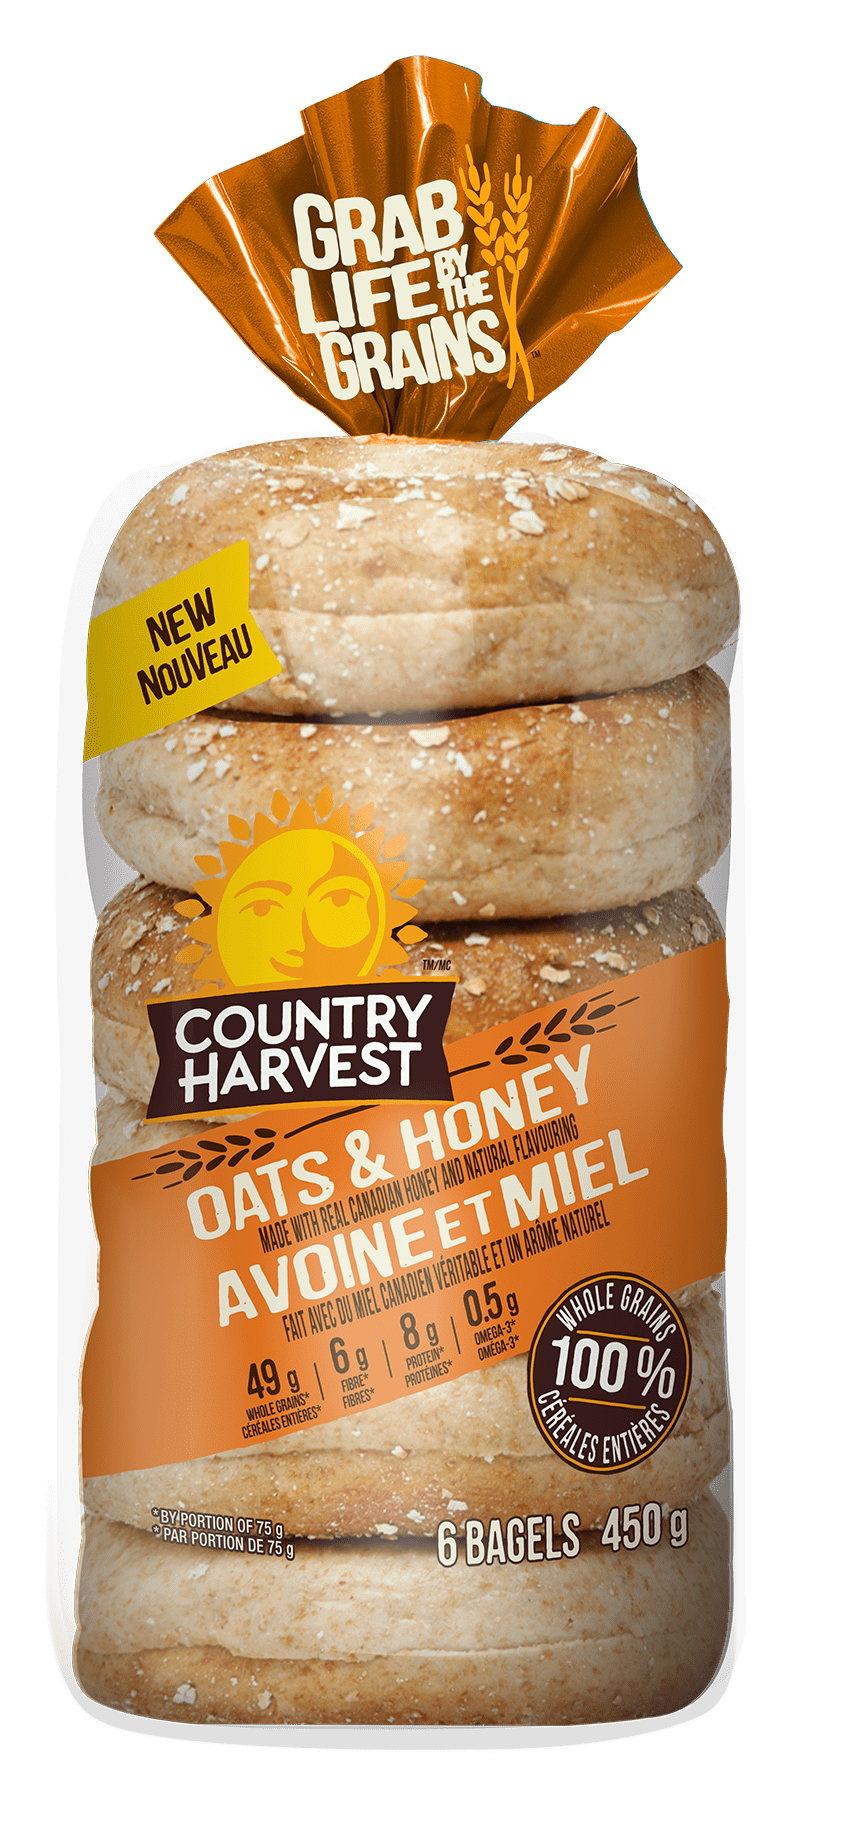 Country-Harvest-Oats-and-Honey-Bagel-Pack